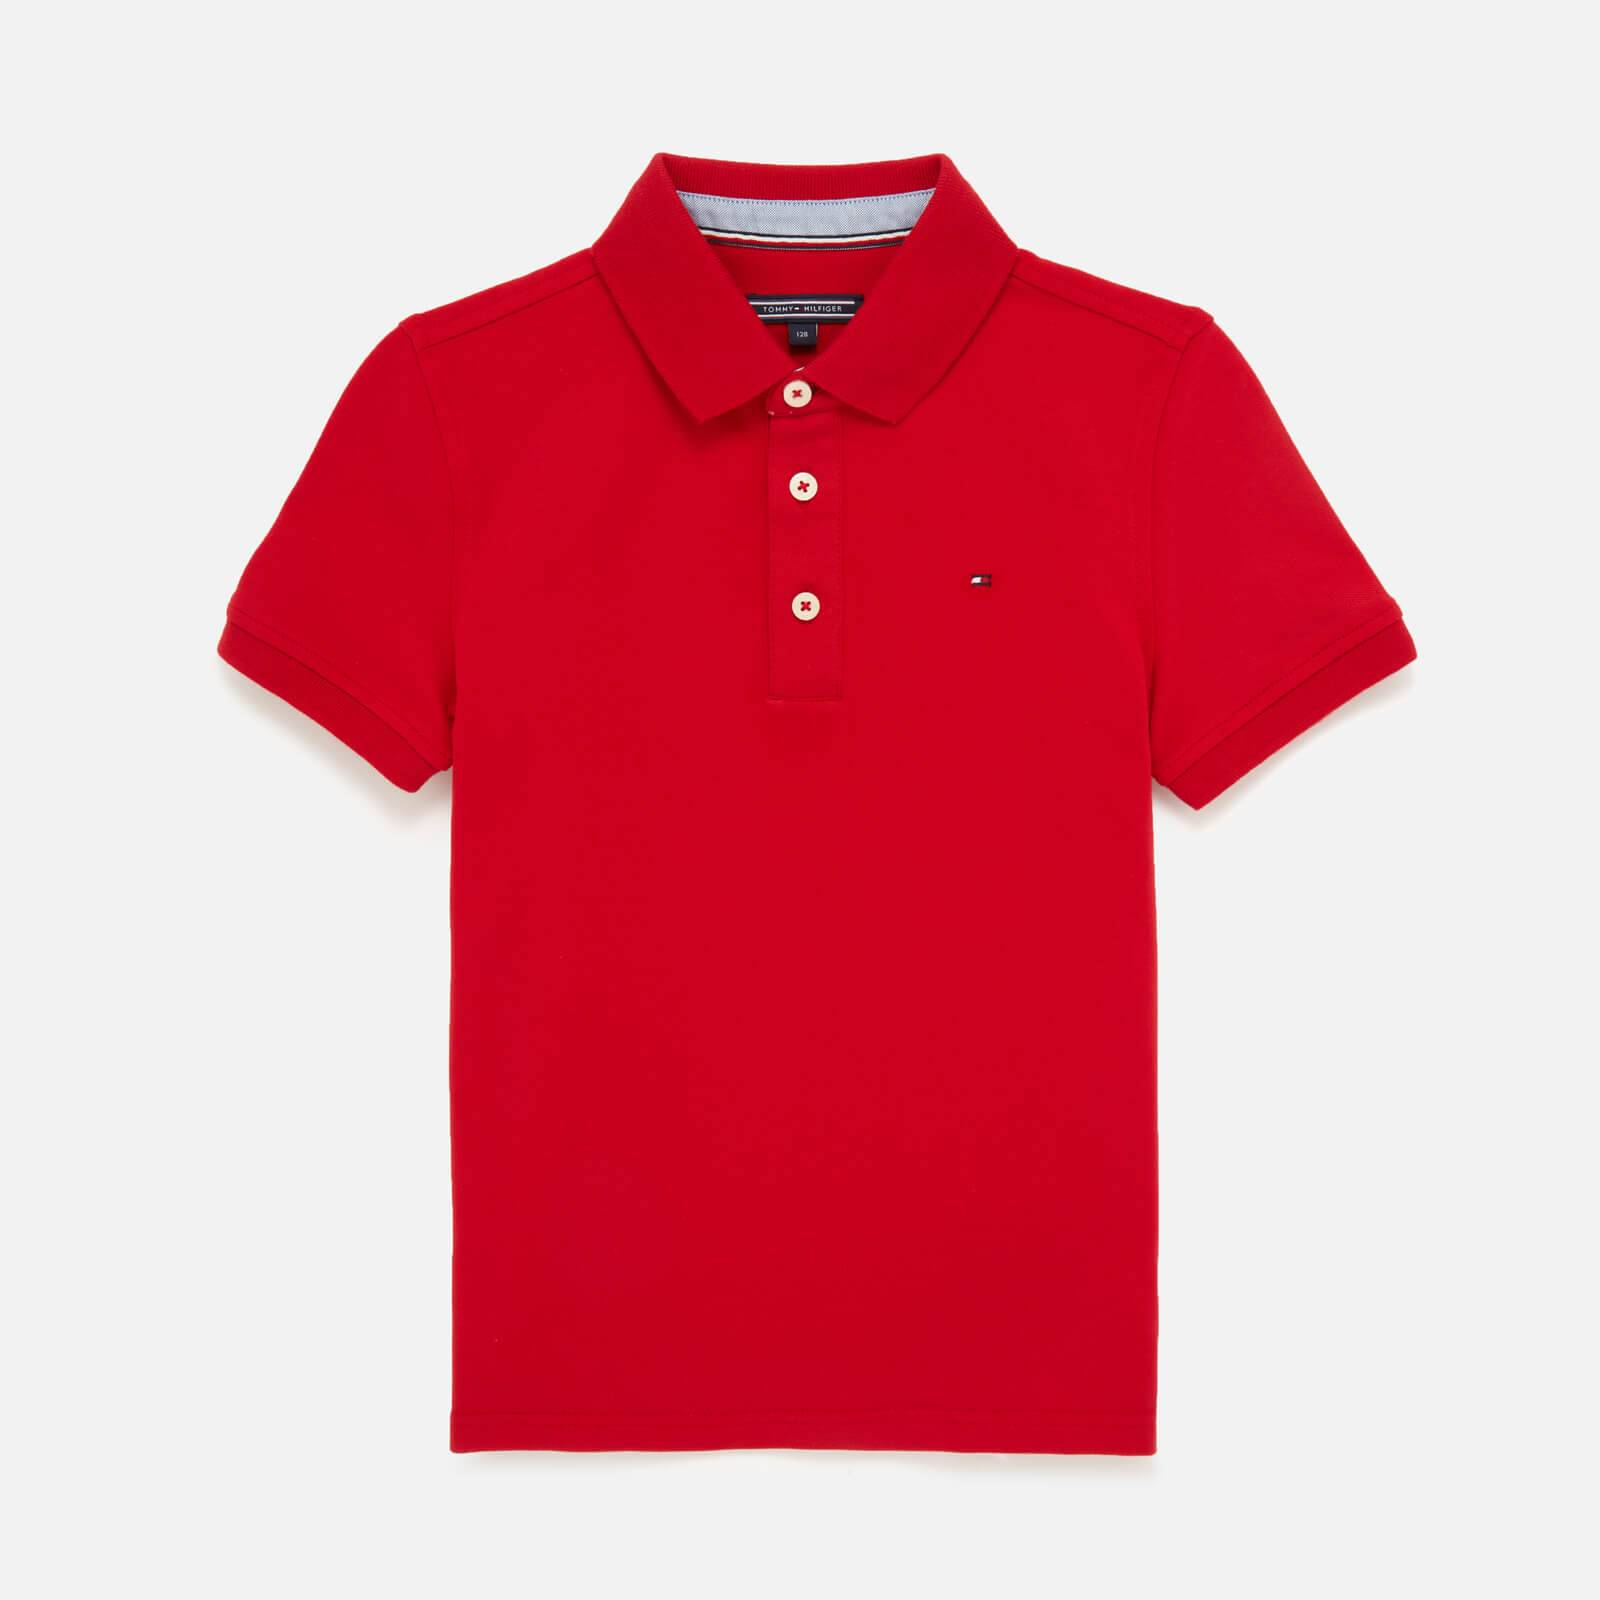 Tommy Kids Boys' Iconic Polo Shirt - Apple Red - 8 Years